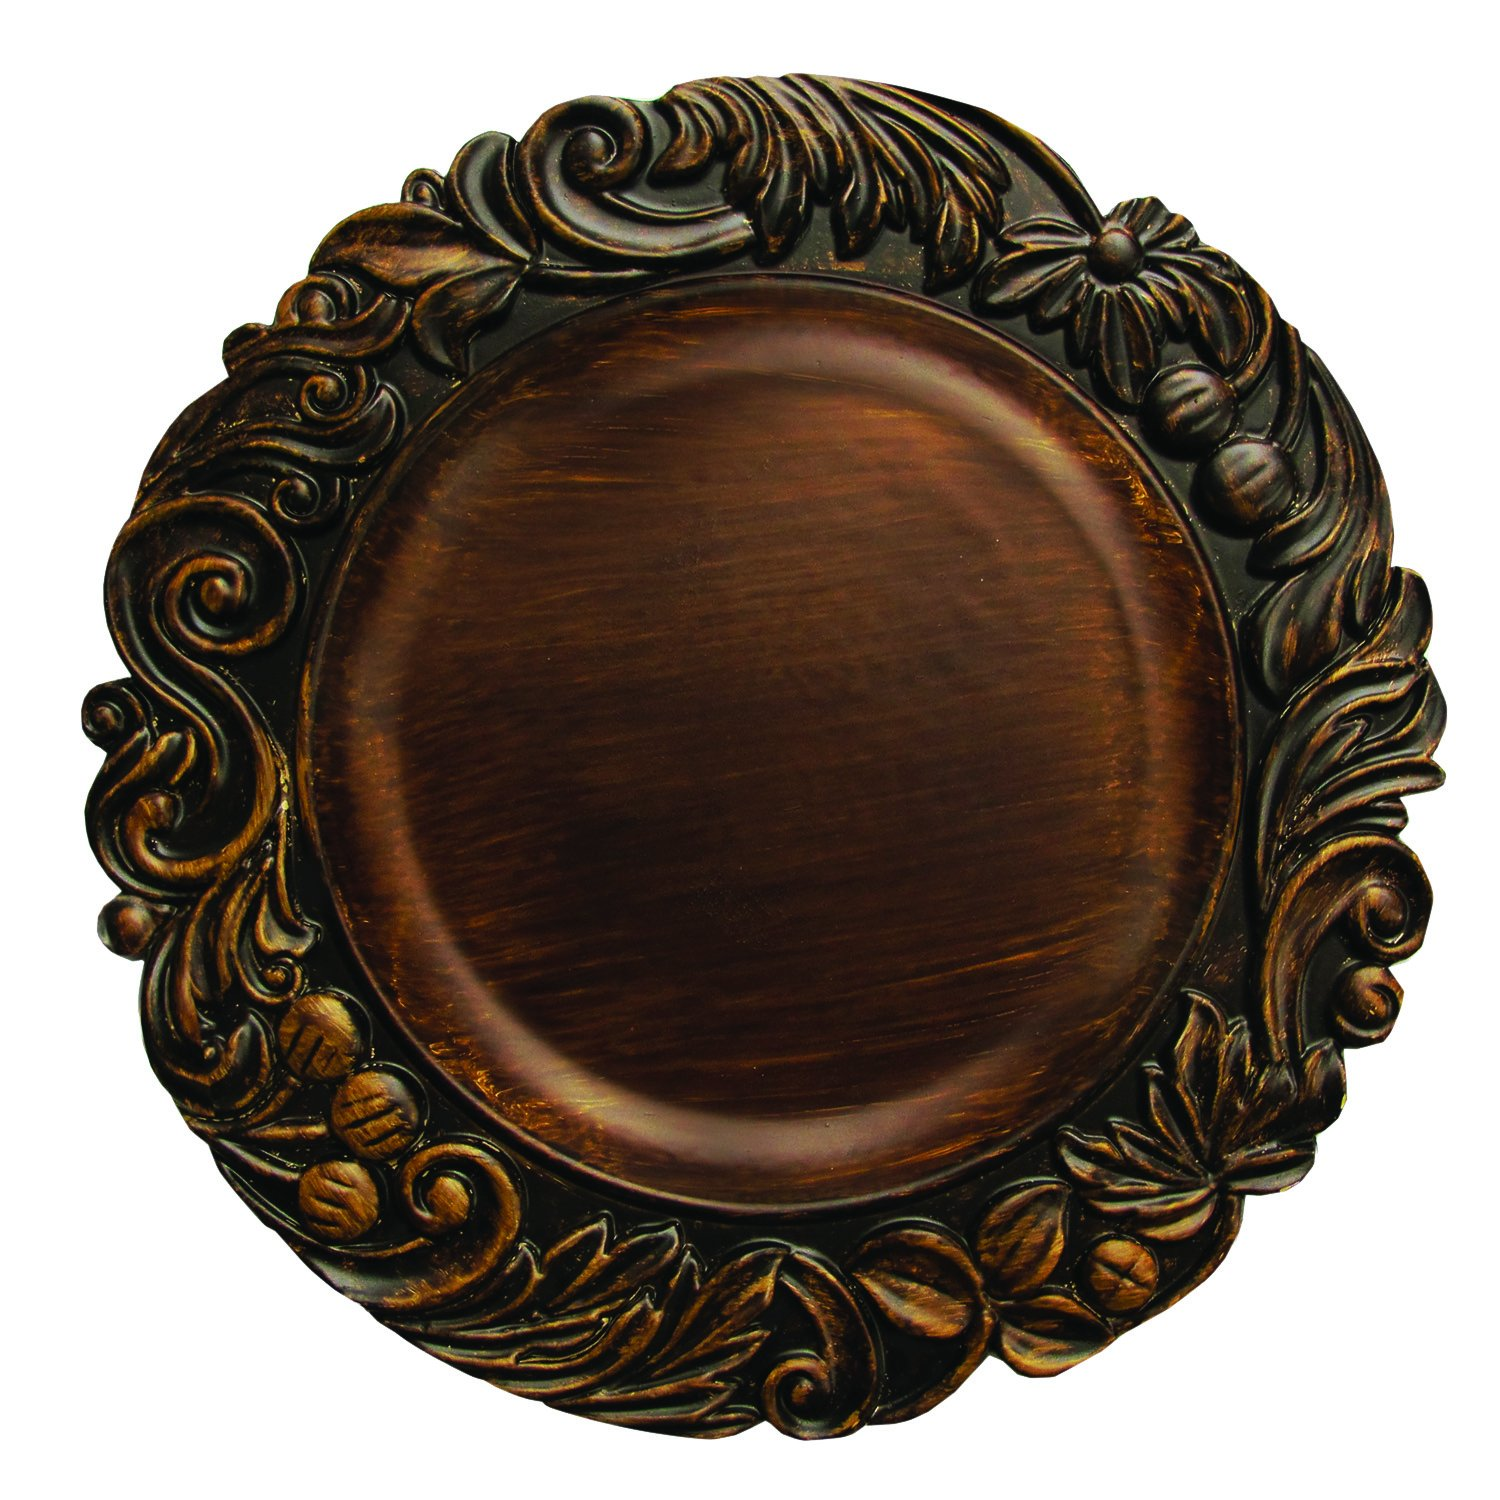 ChargeIt by Jay Aristocrat Round Charger Plate, Brown